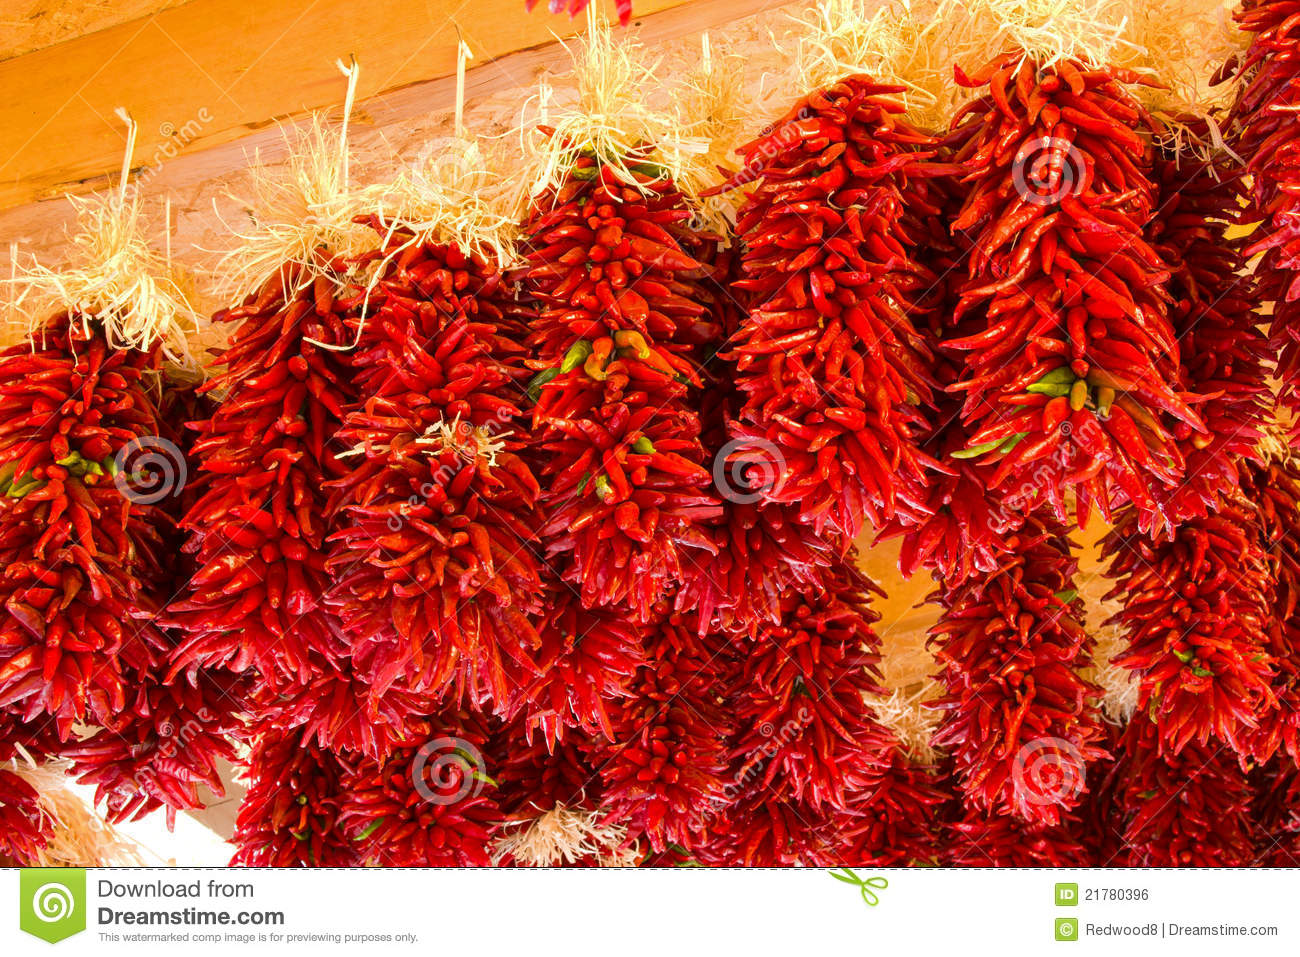 New Mexico Chilies